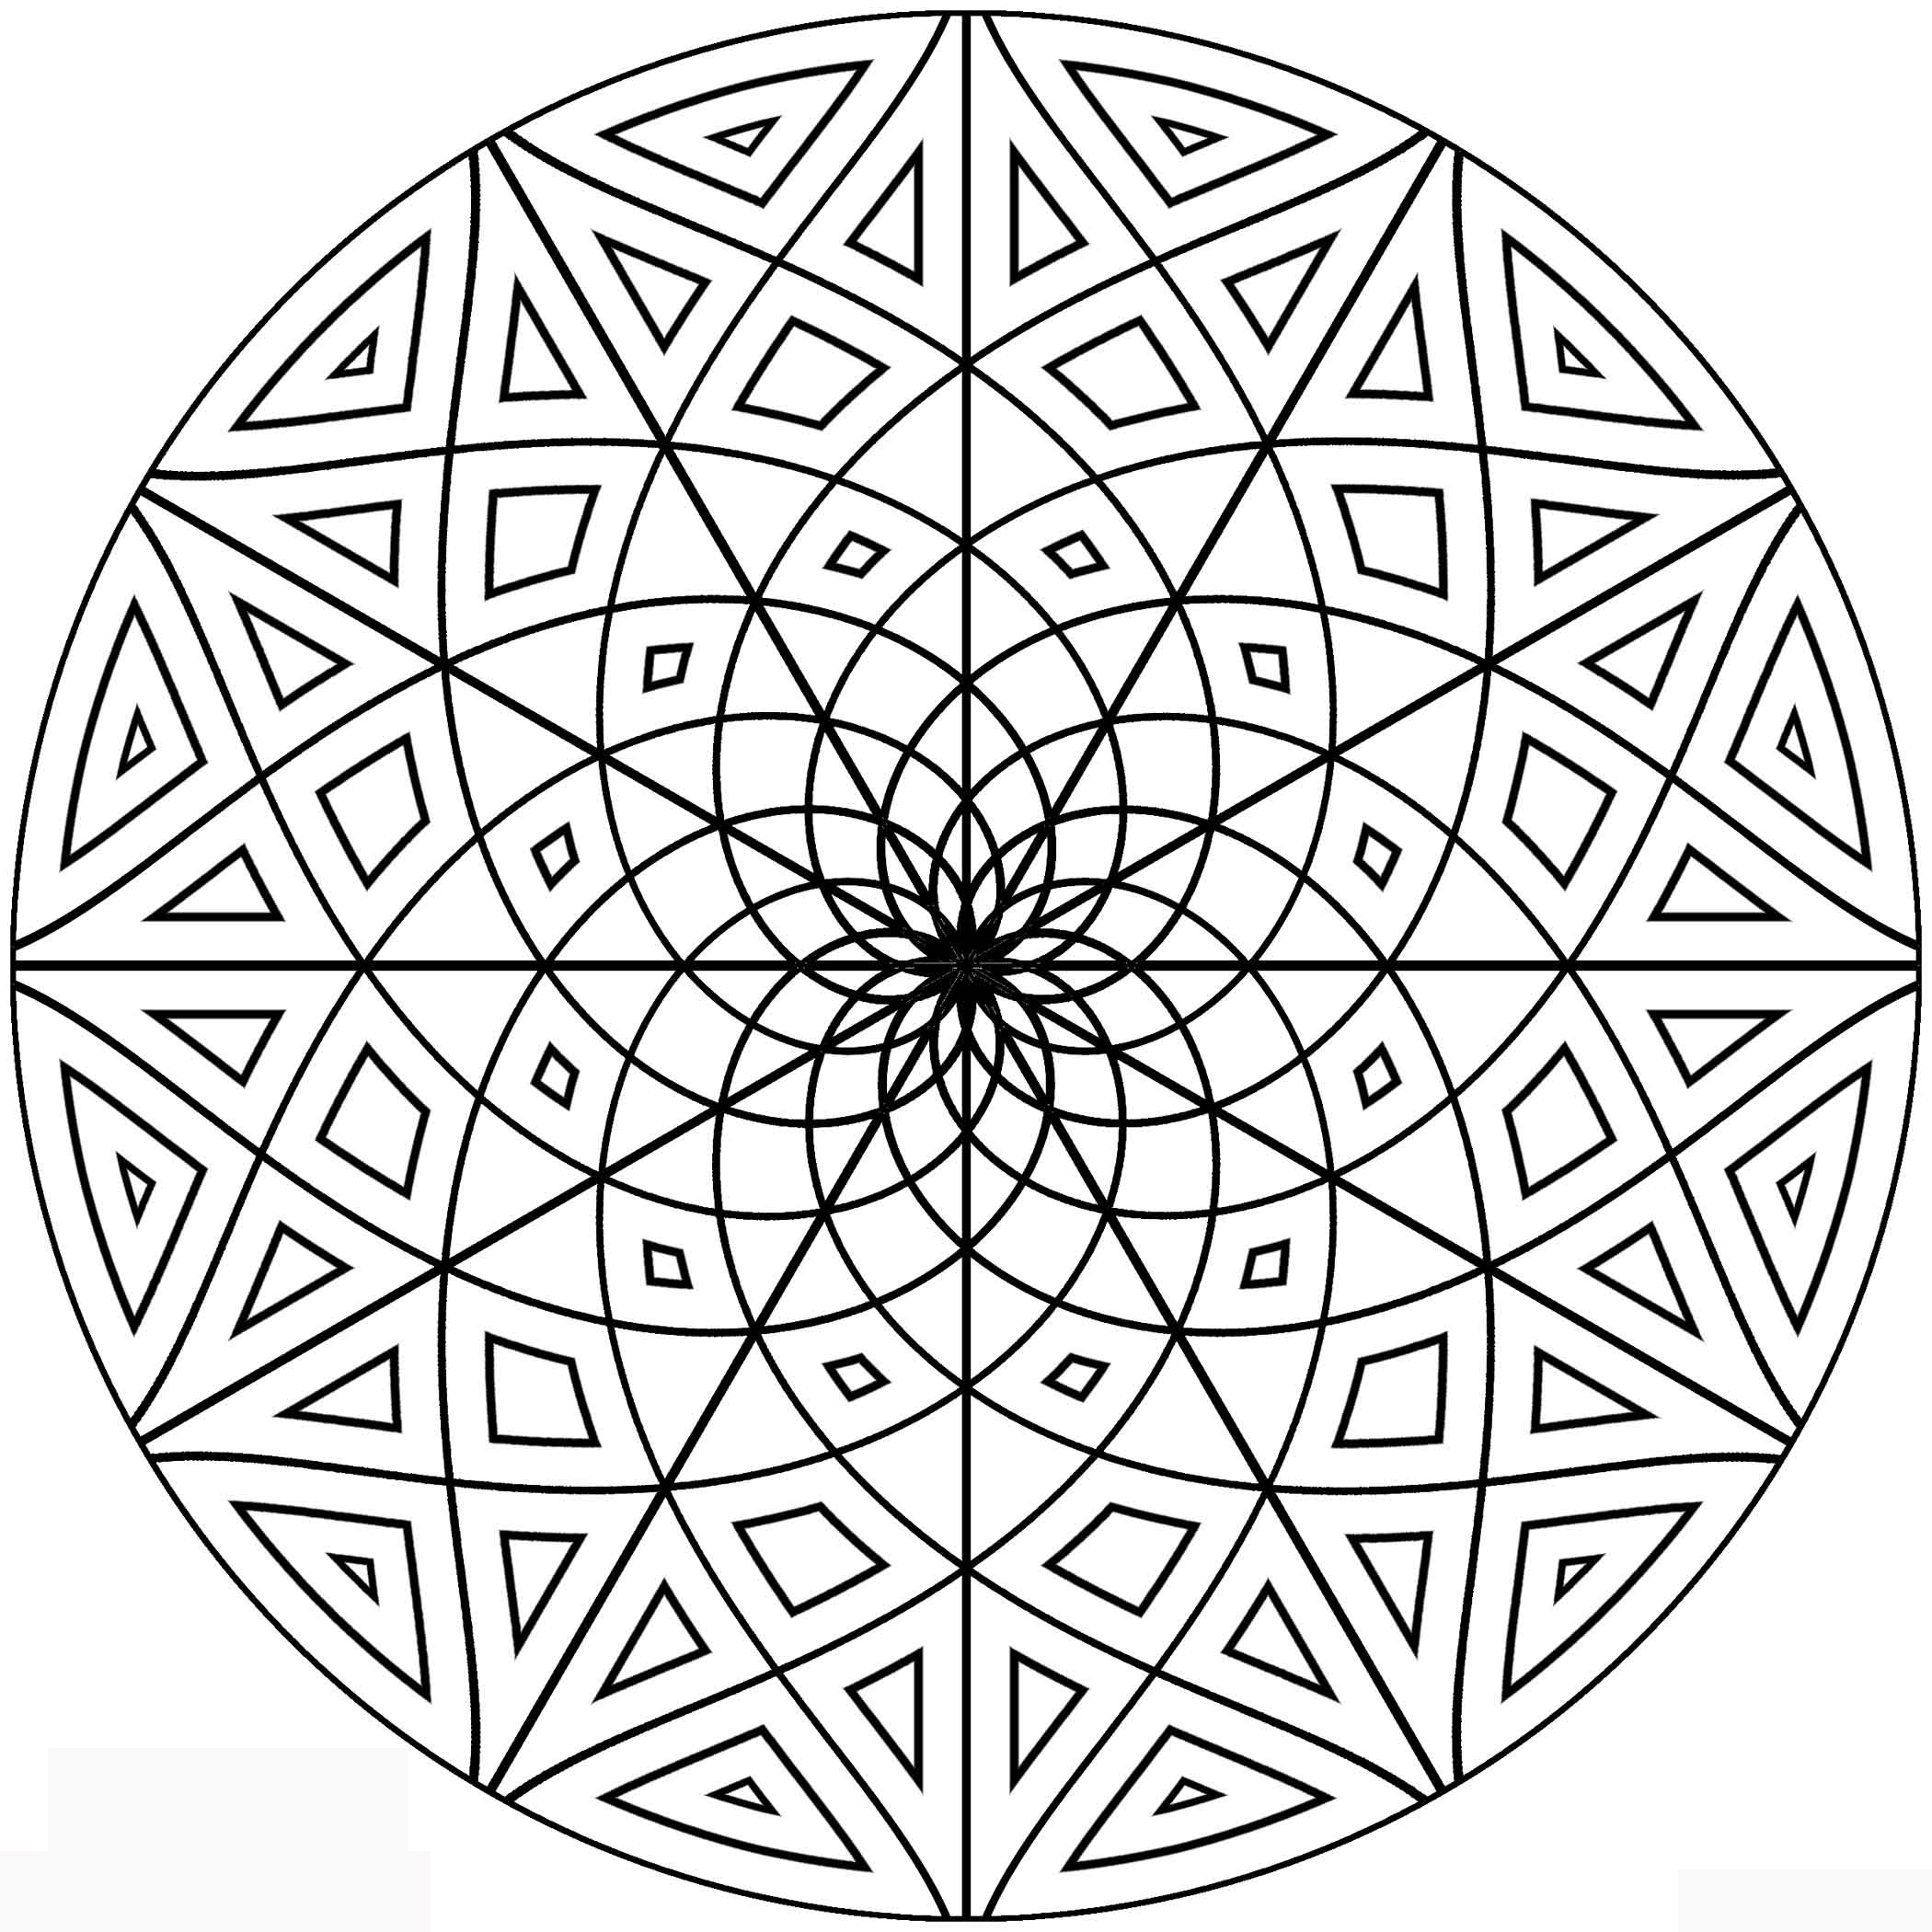 geometric pictures to color coloring pages geometric free printable coloring pages pictures color geometric to